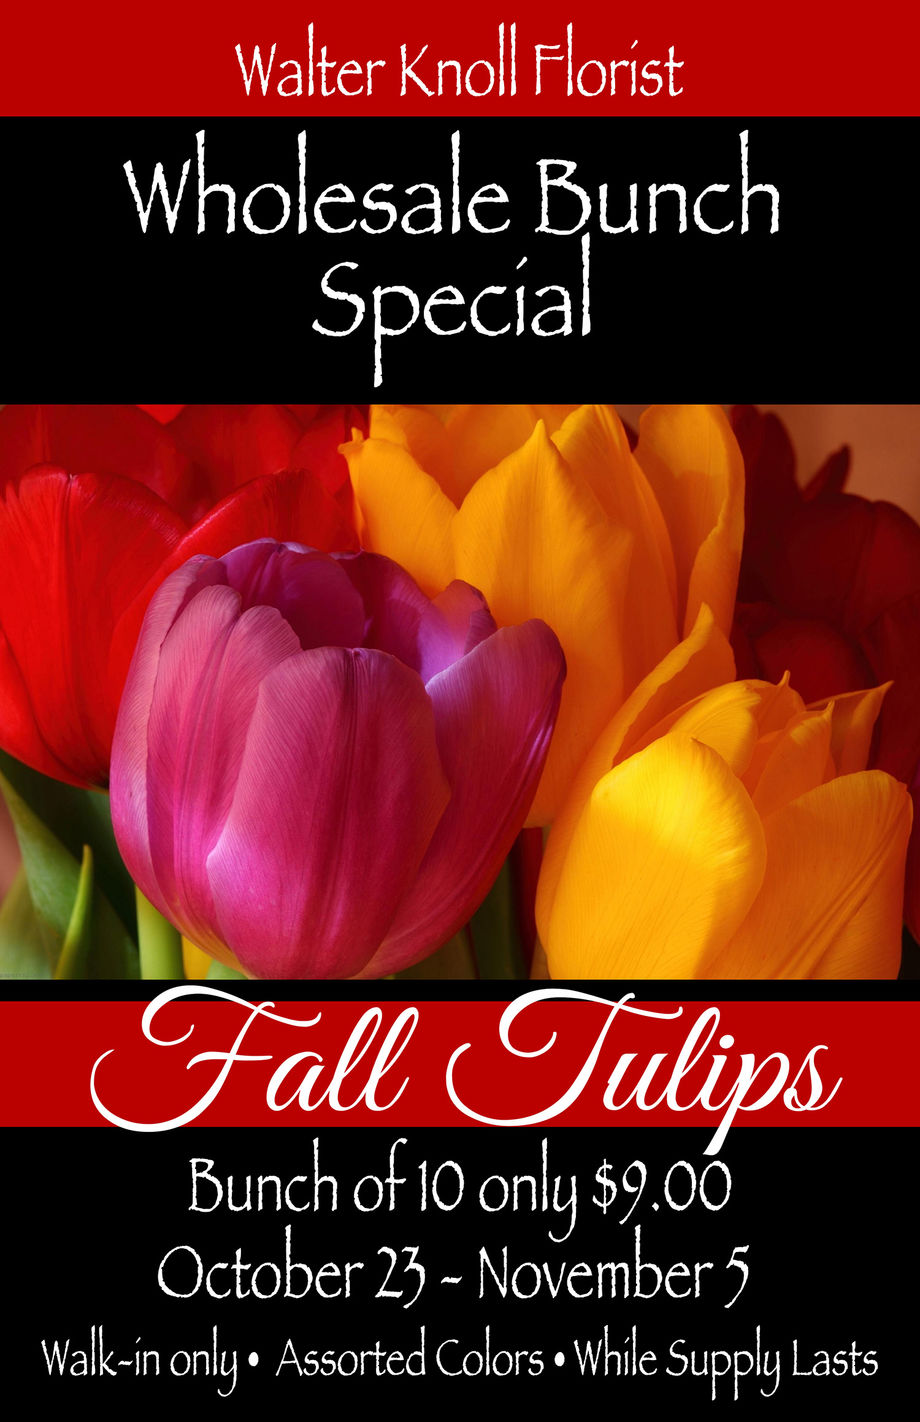 Fall Tulips Bunch Special Walter Knoll Florist